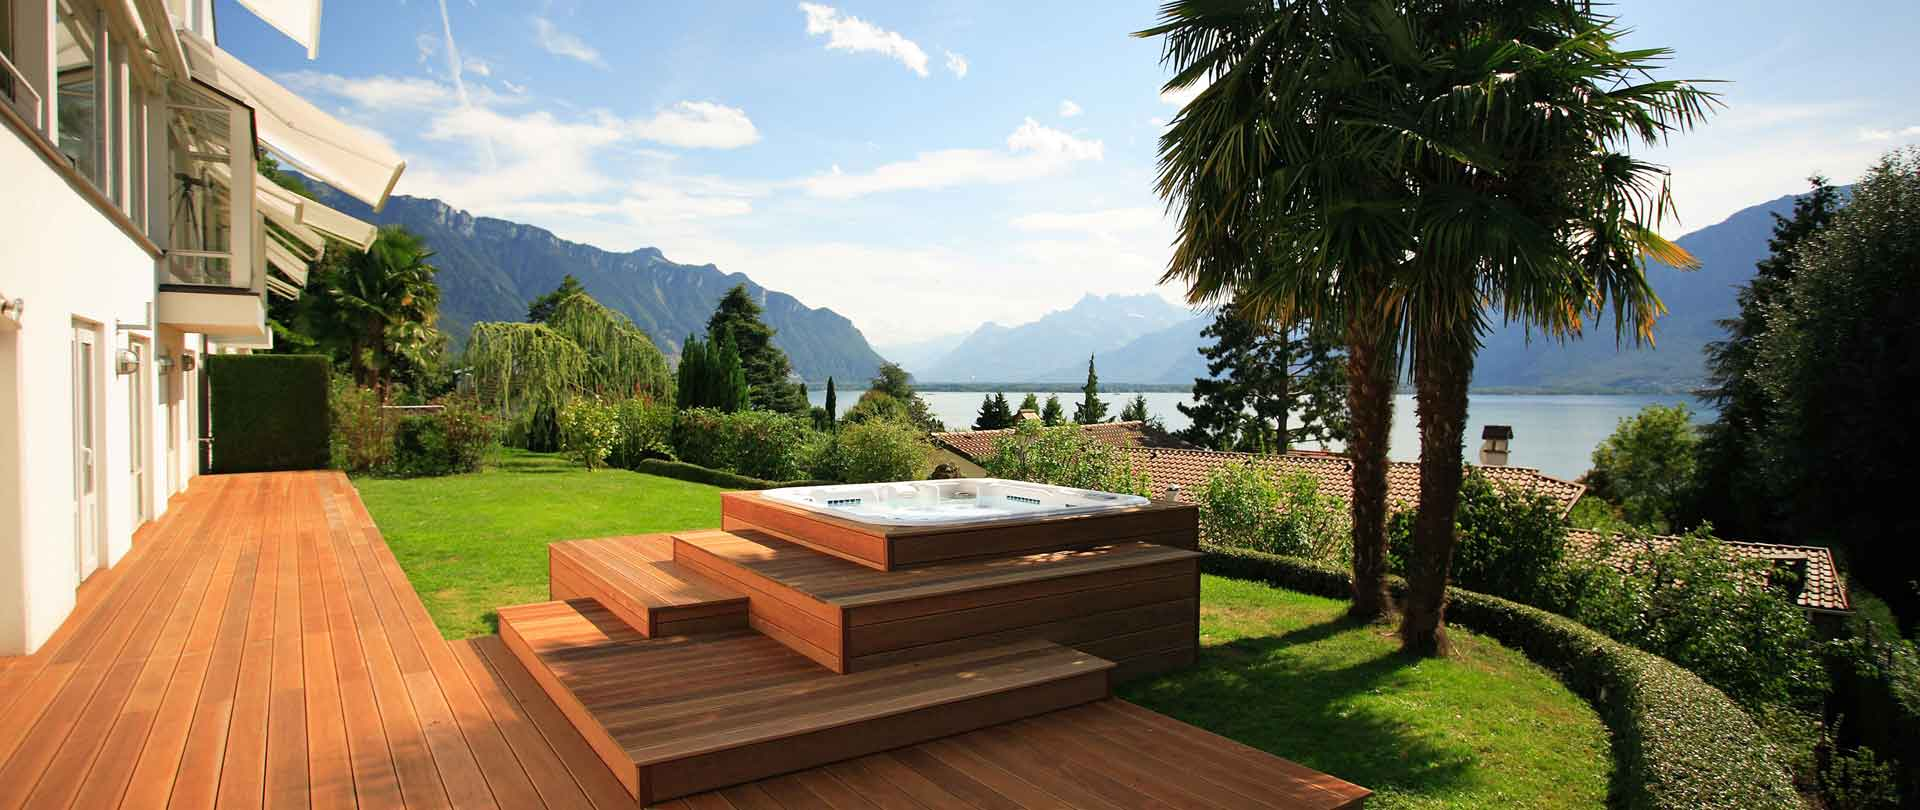 Pin spa jacuzzi annecy on pinterest for Home salon annecy